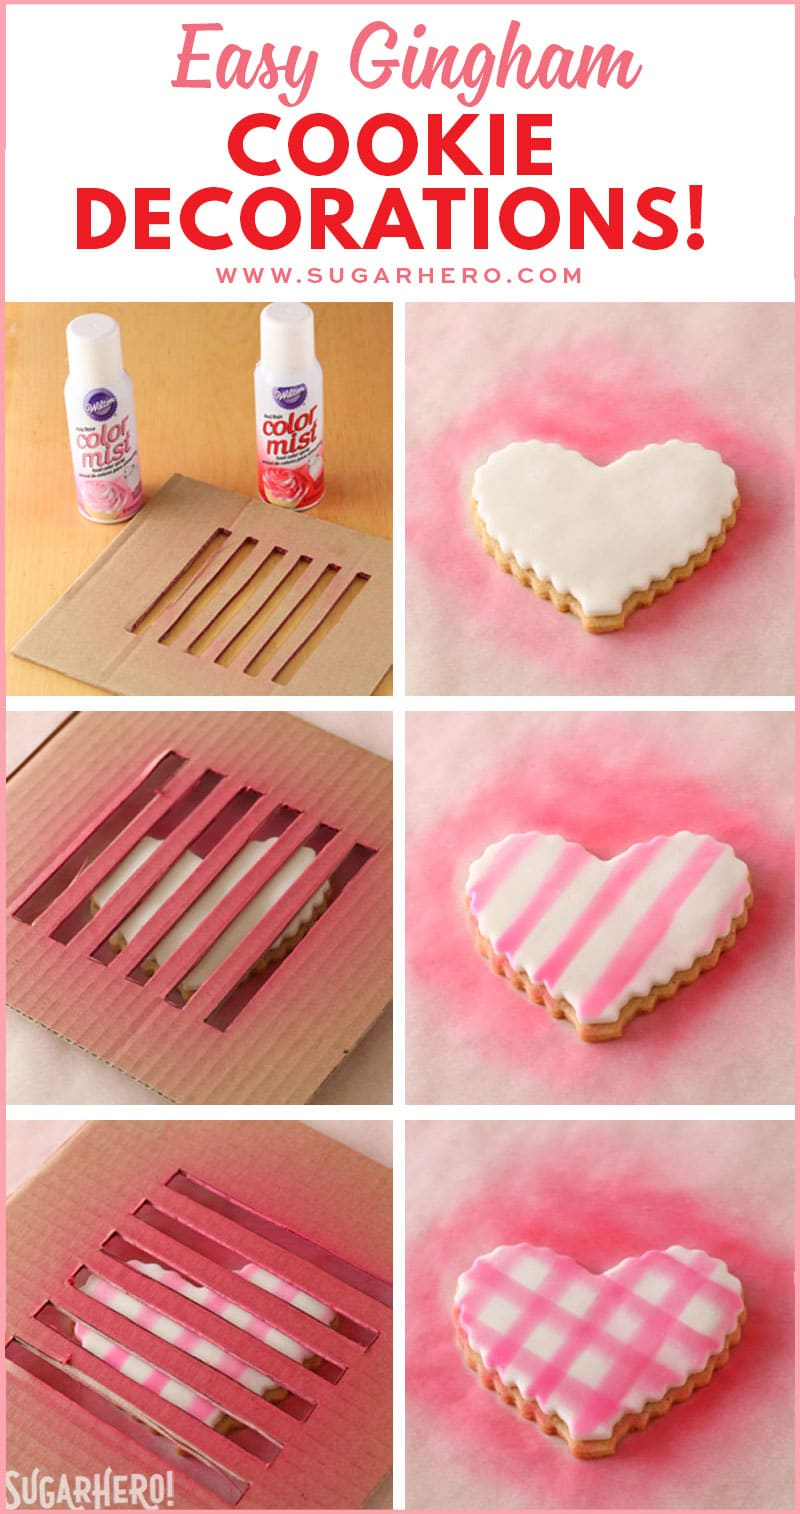 Brown Butter Heart Cookies - photo tutorial showing how to create the gingham pattern on fondant using color mist sprays | From SugarHero.com